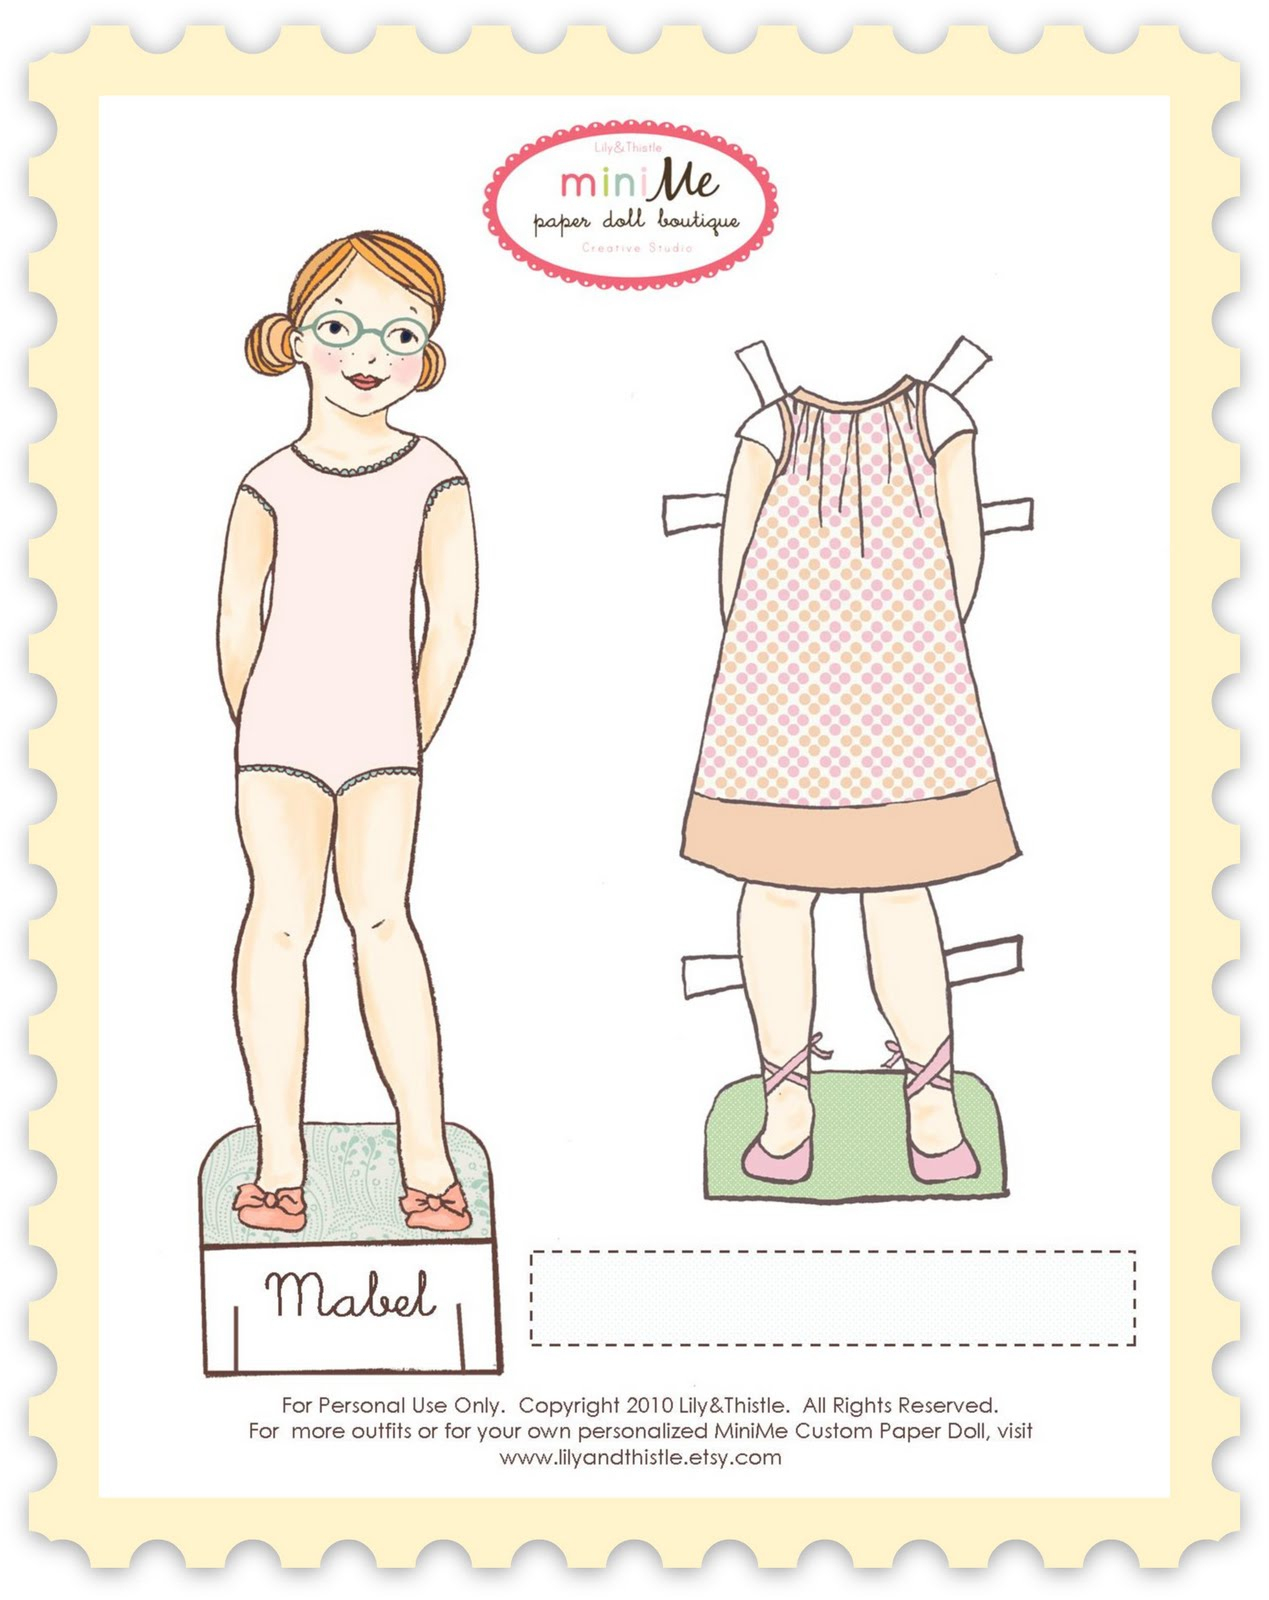 Lily & Thistle: Meet Mabel. Free Printable Paper Doll - Free Printable Paper Dolls